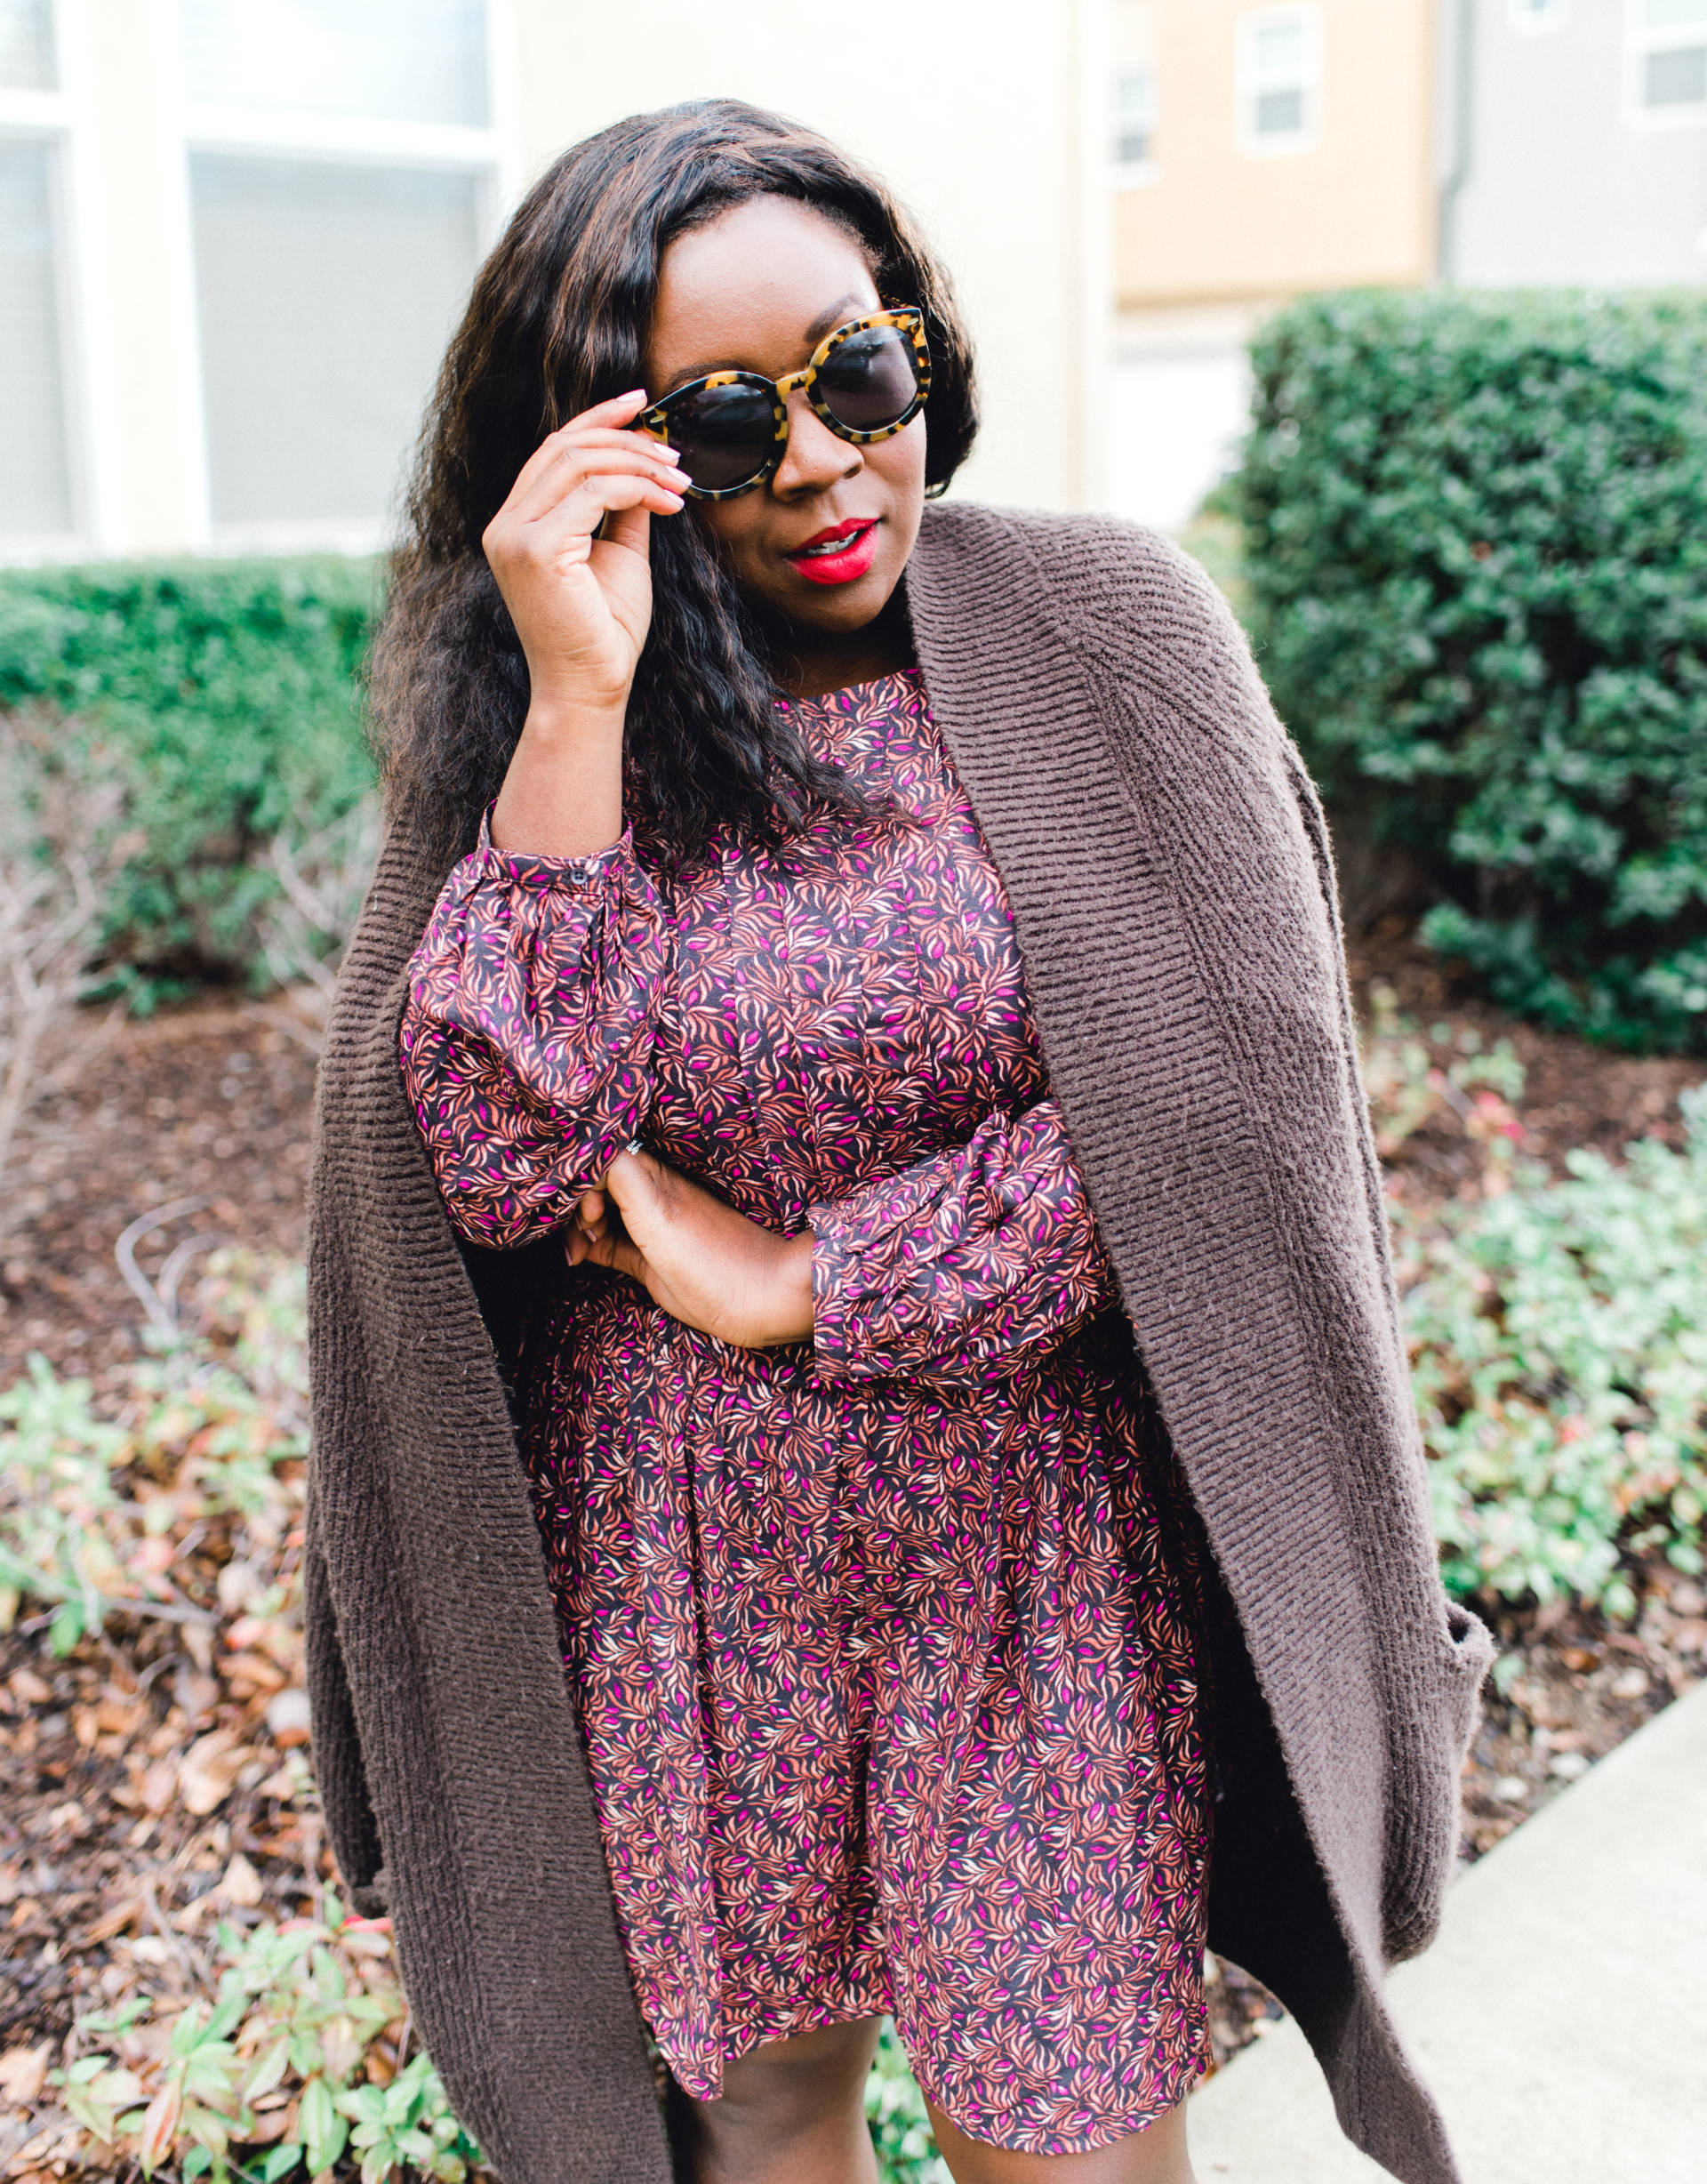 Ruthie Ridley Blog Spring is just around the corner and I cannot wait to bust out all the pretty bright colors and prints! Today I am showcasing my favorite mini dresses for Spring!